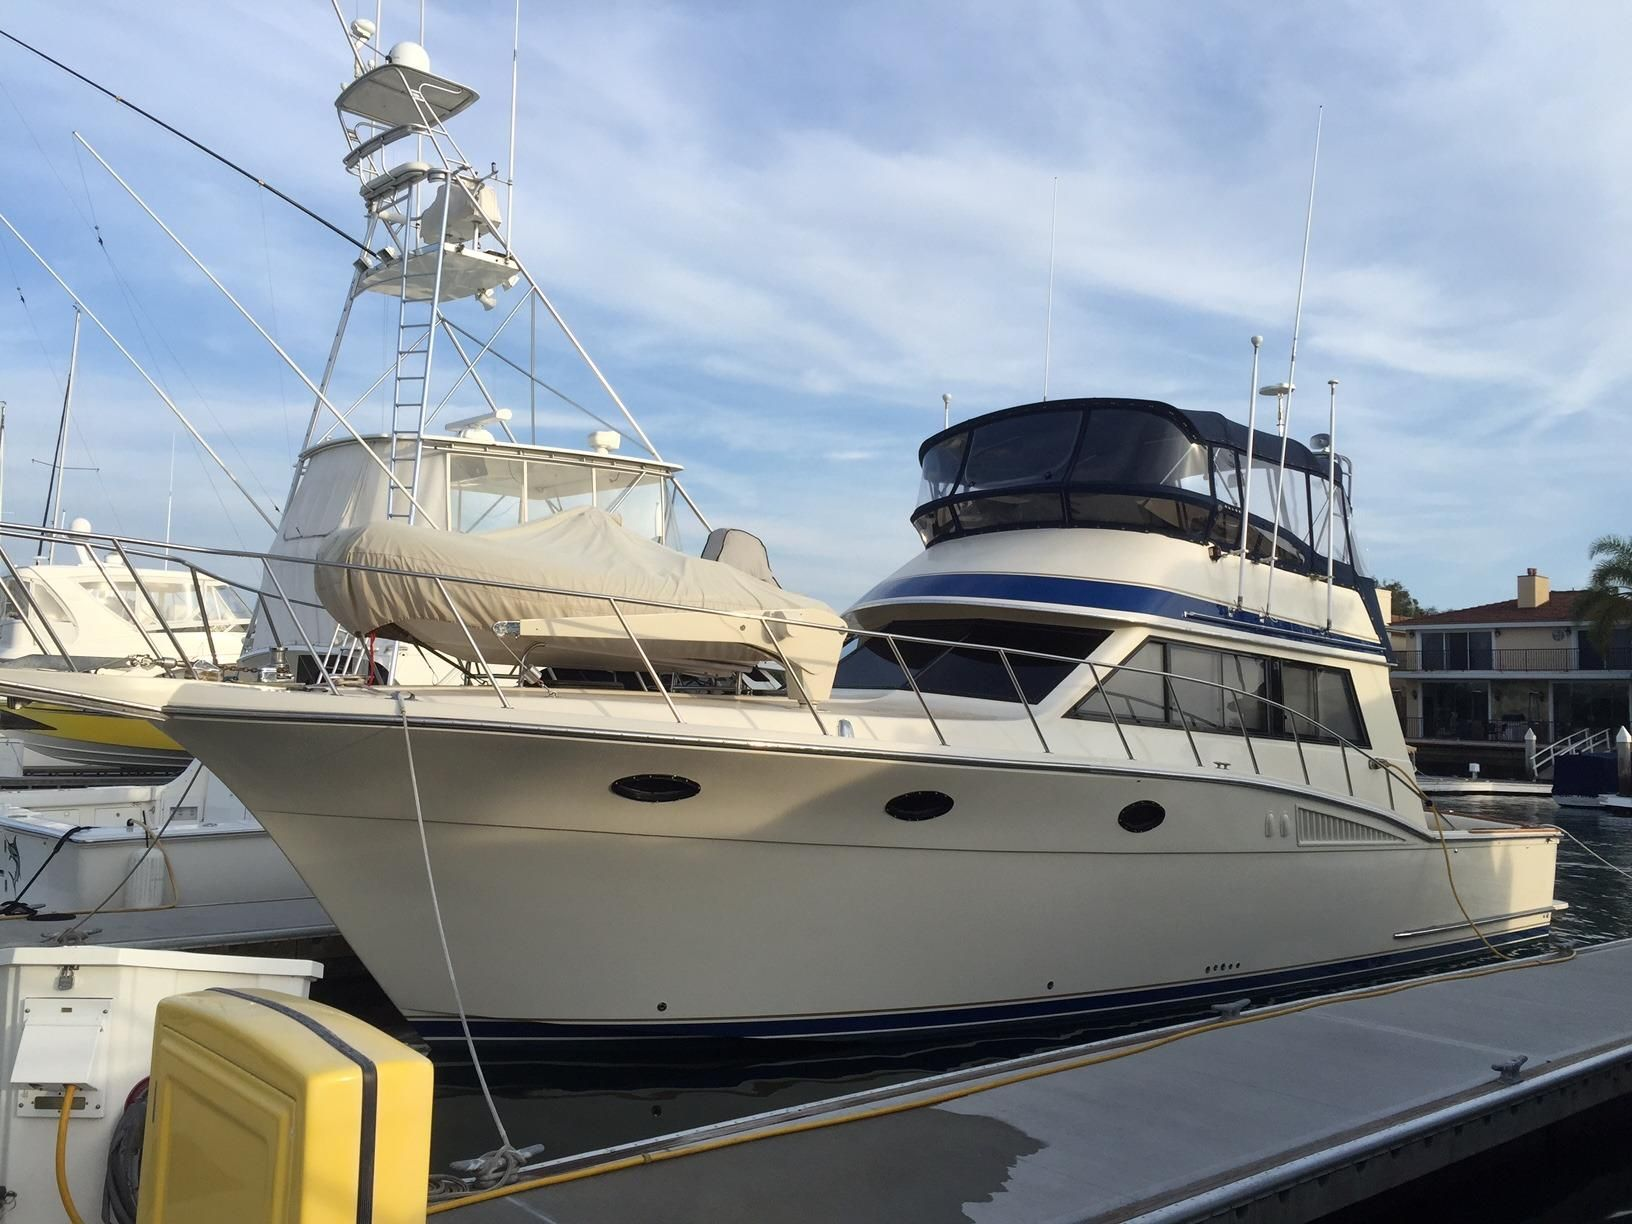 1987 Californian 48 Convertible Convertible Boat For Sale